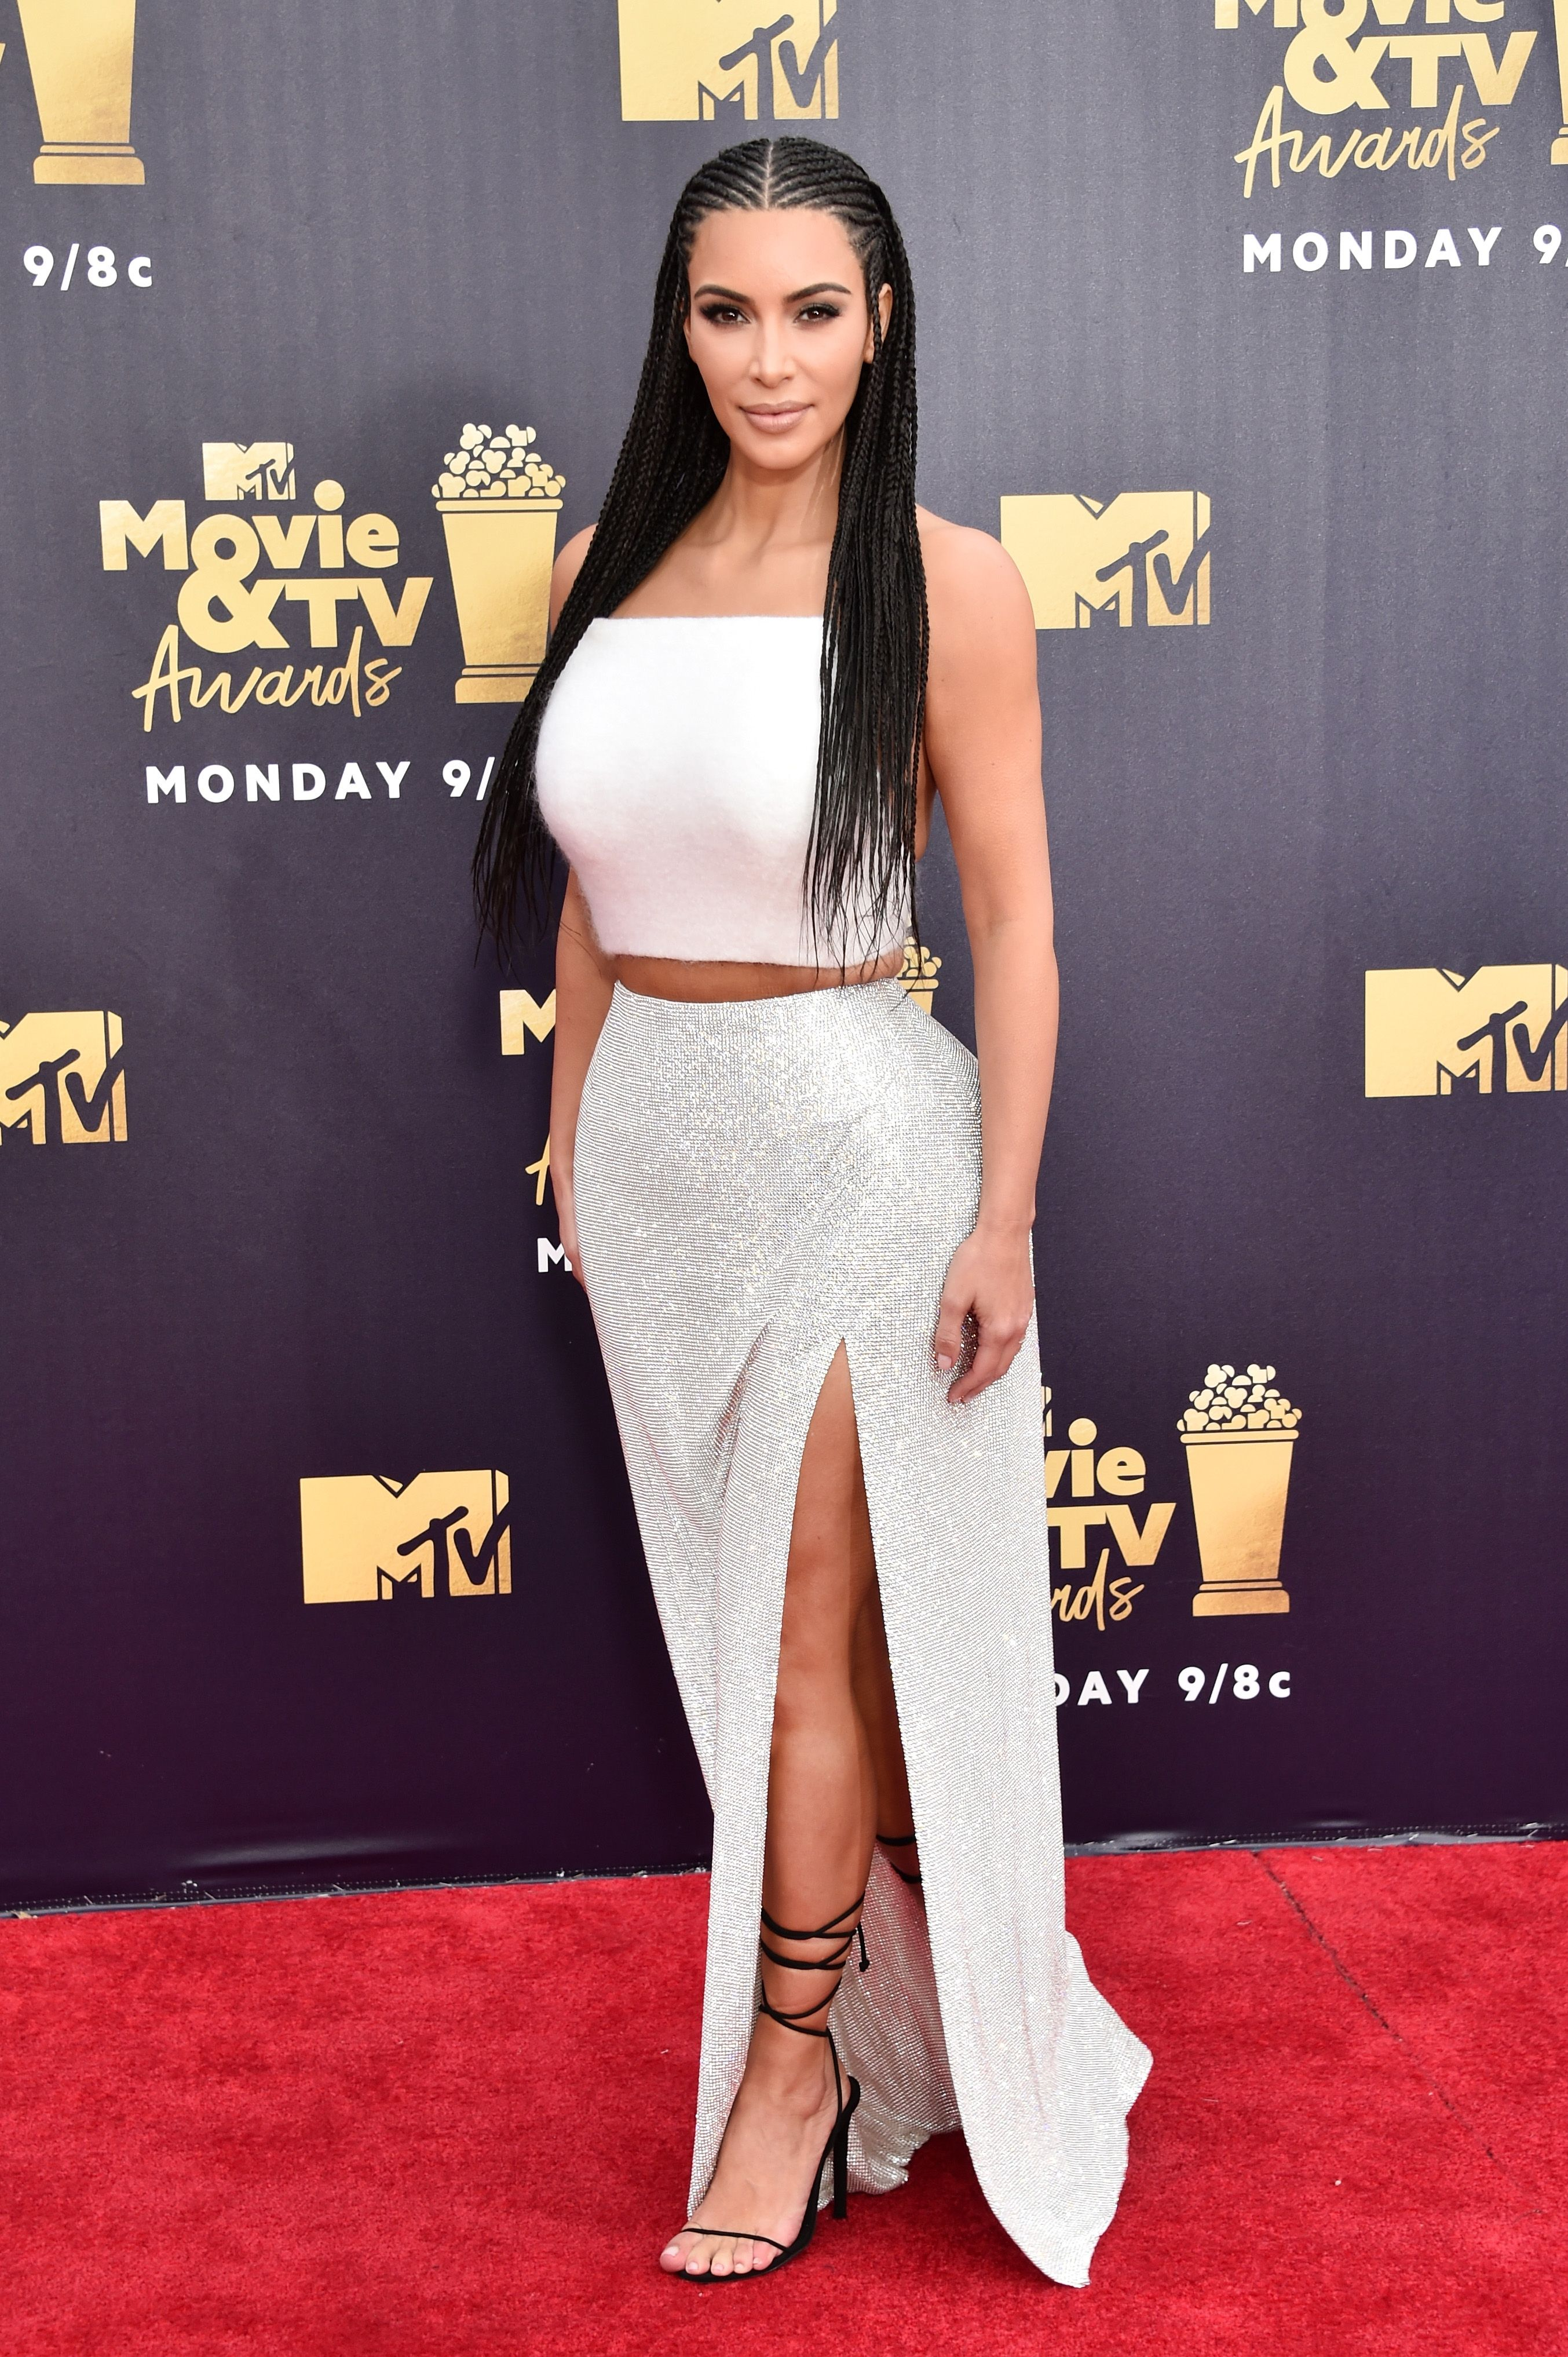 Fashion week Red movie mtv carpet awards for lady